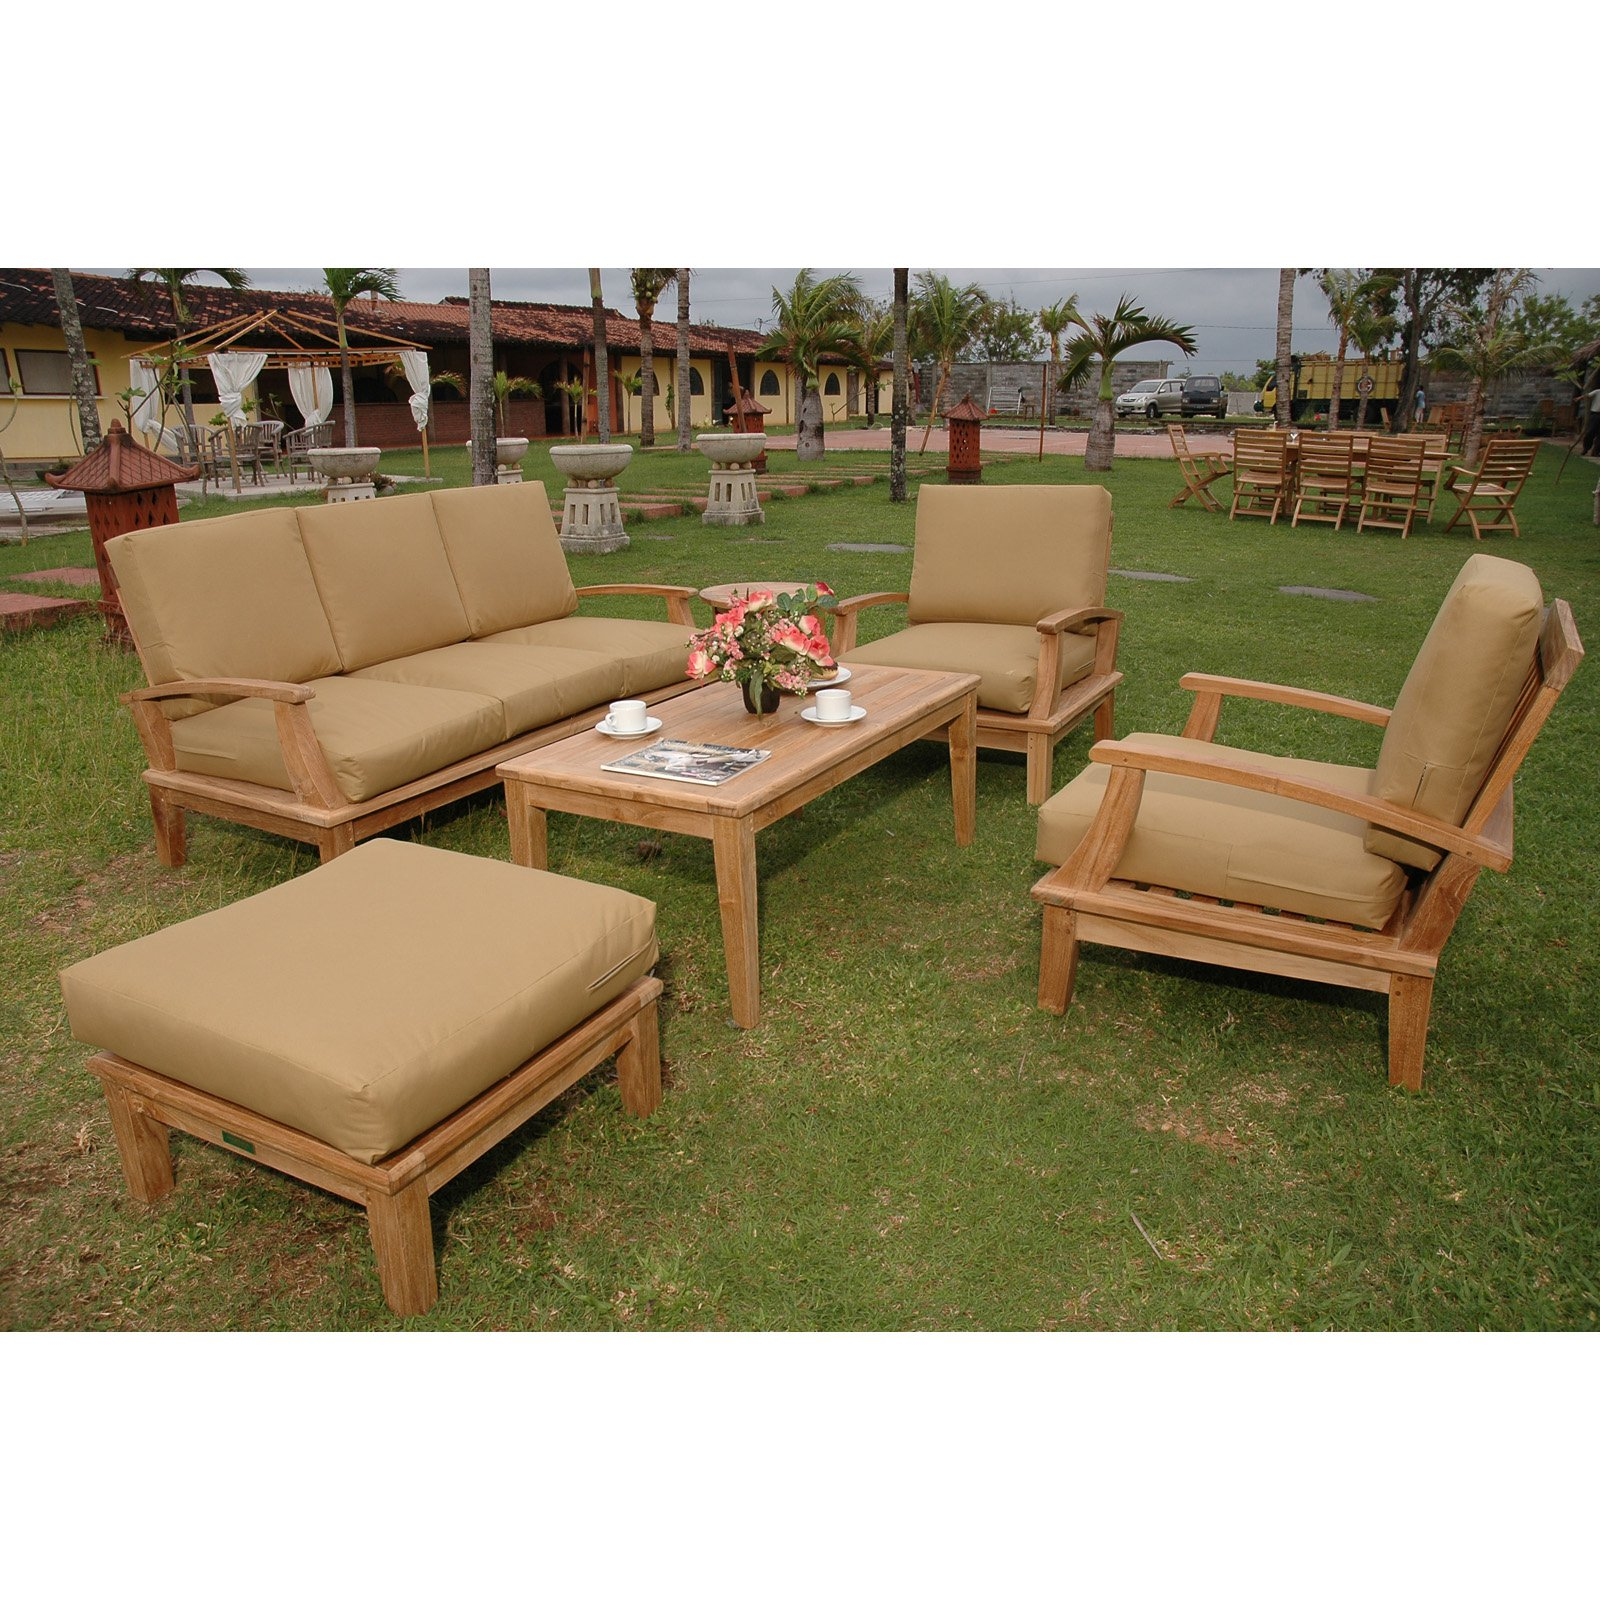 Anderson Teak Brianna Wooden 5 Piece Sofa Patio Conversation Set